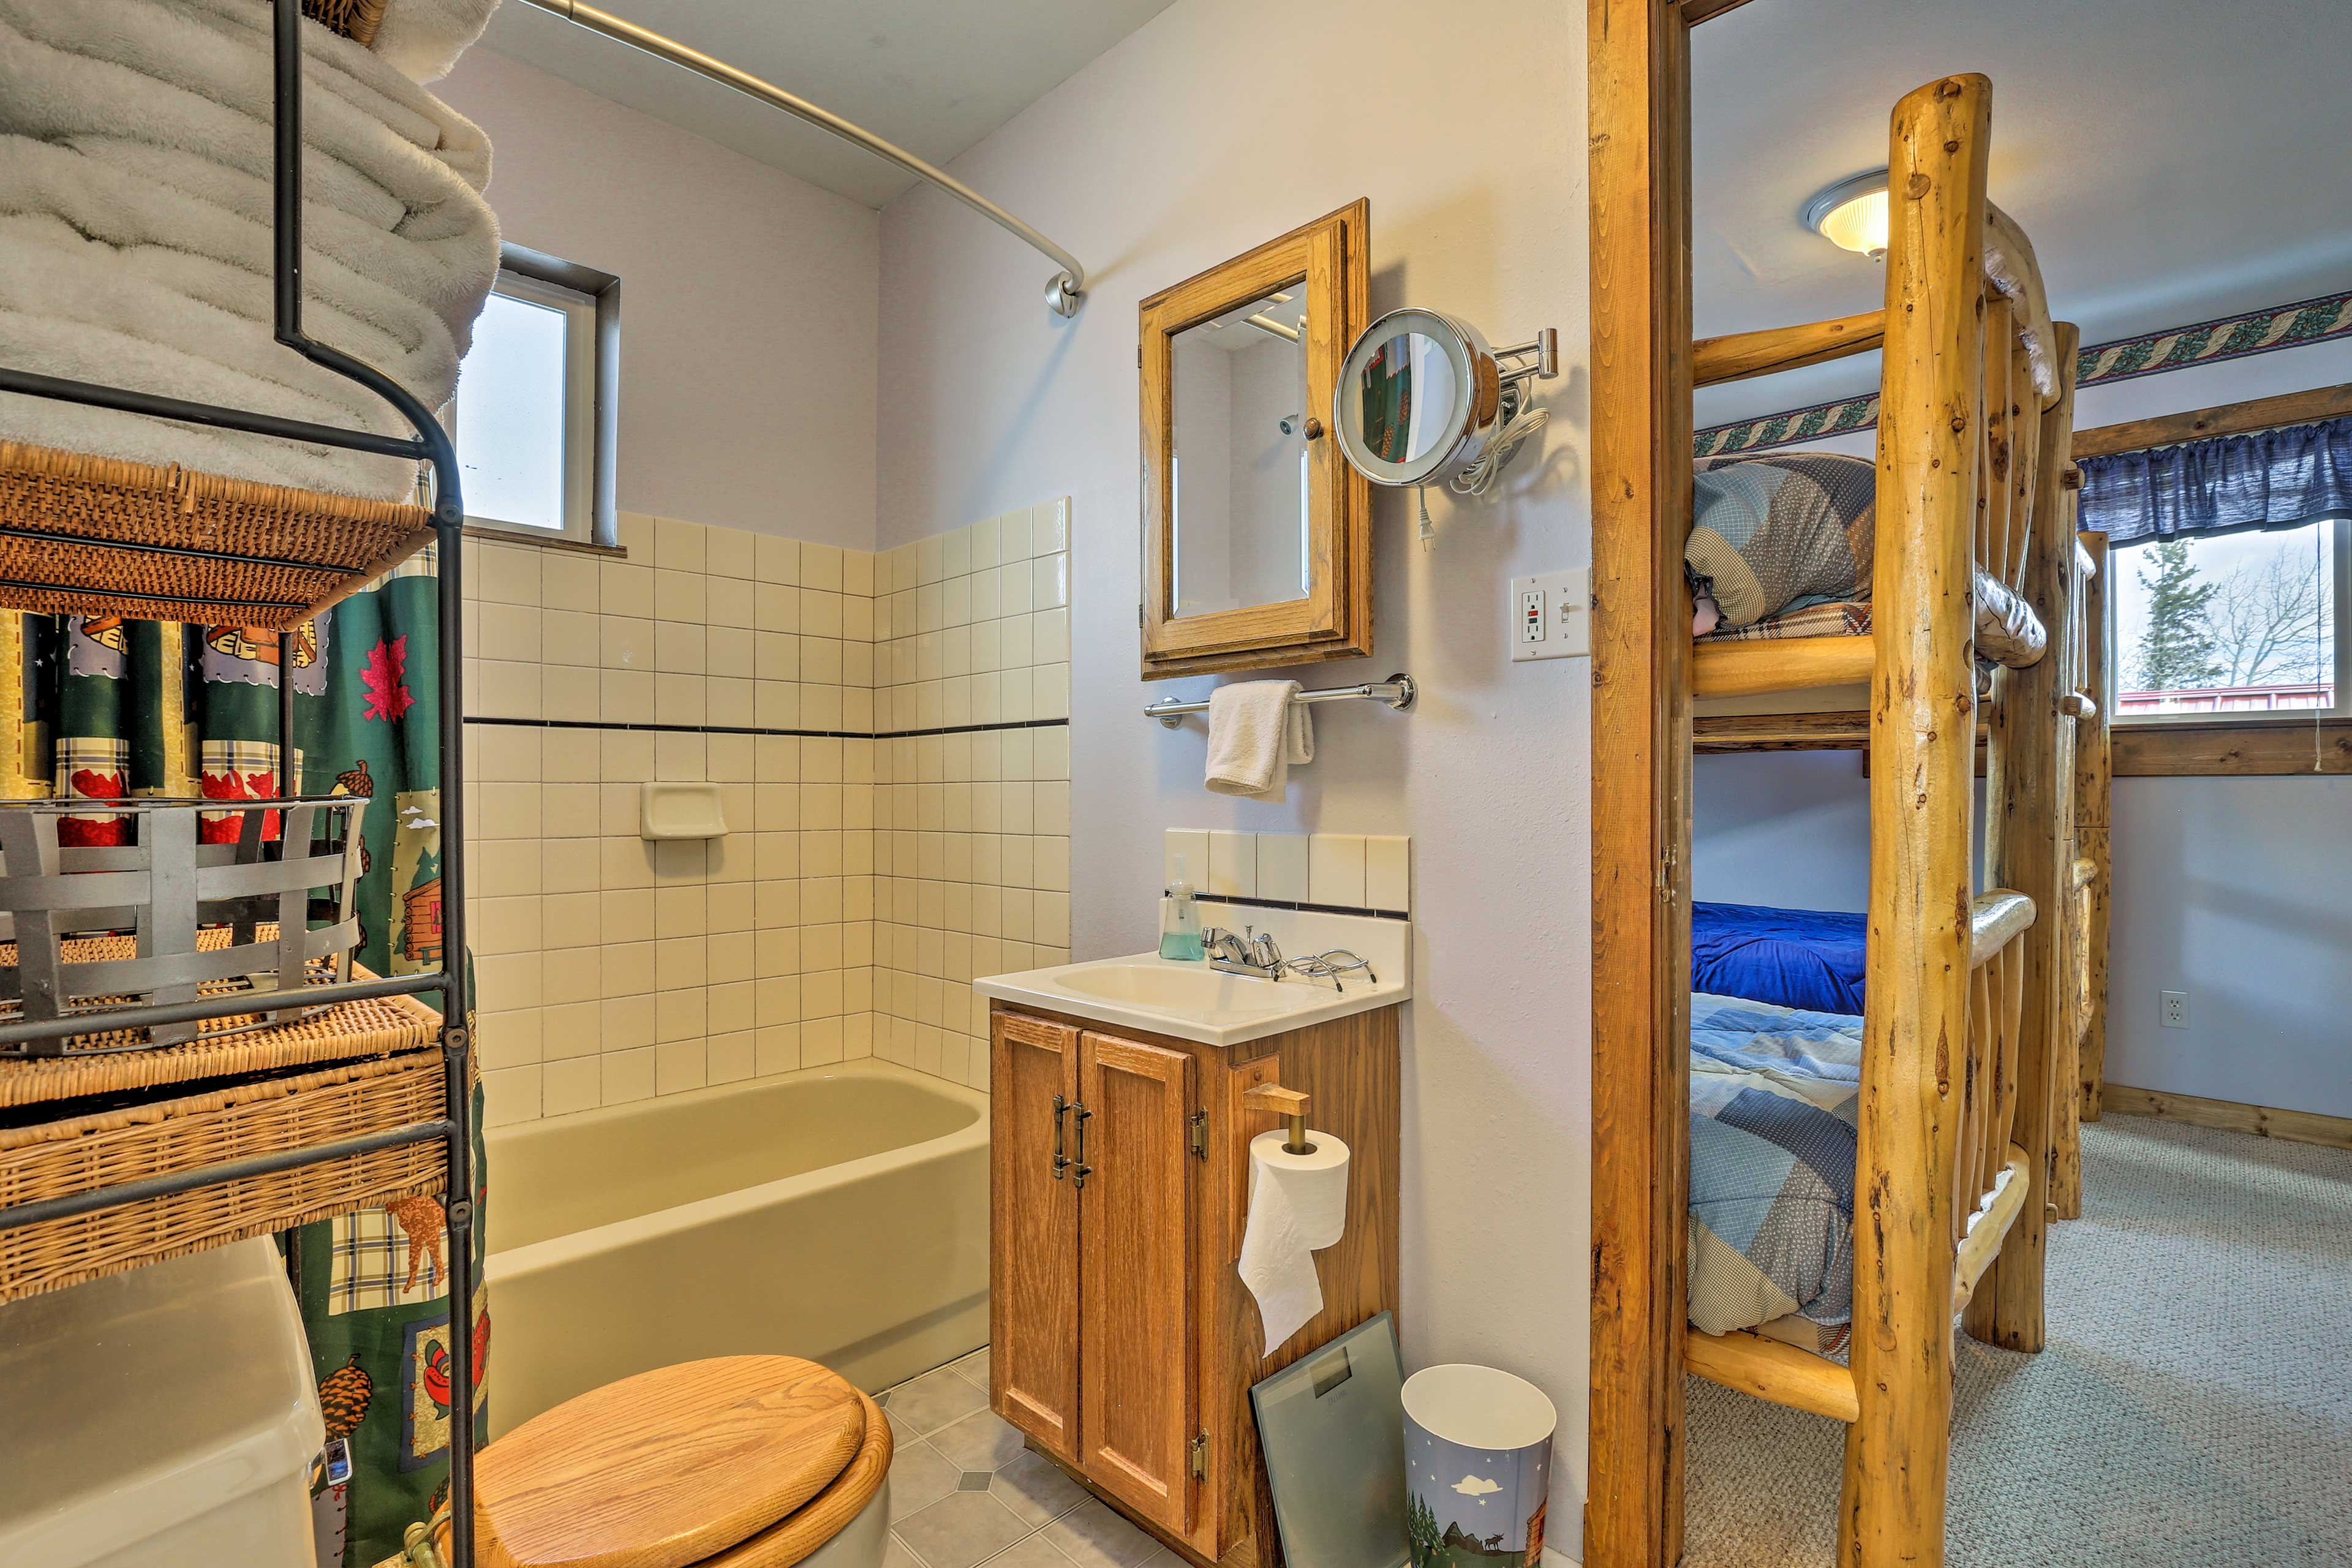 The room has an en-suite bathroom with a shower/tub combo.